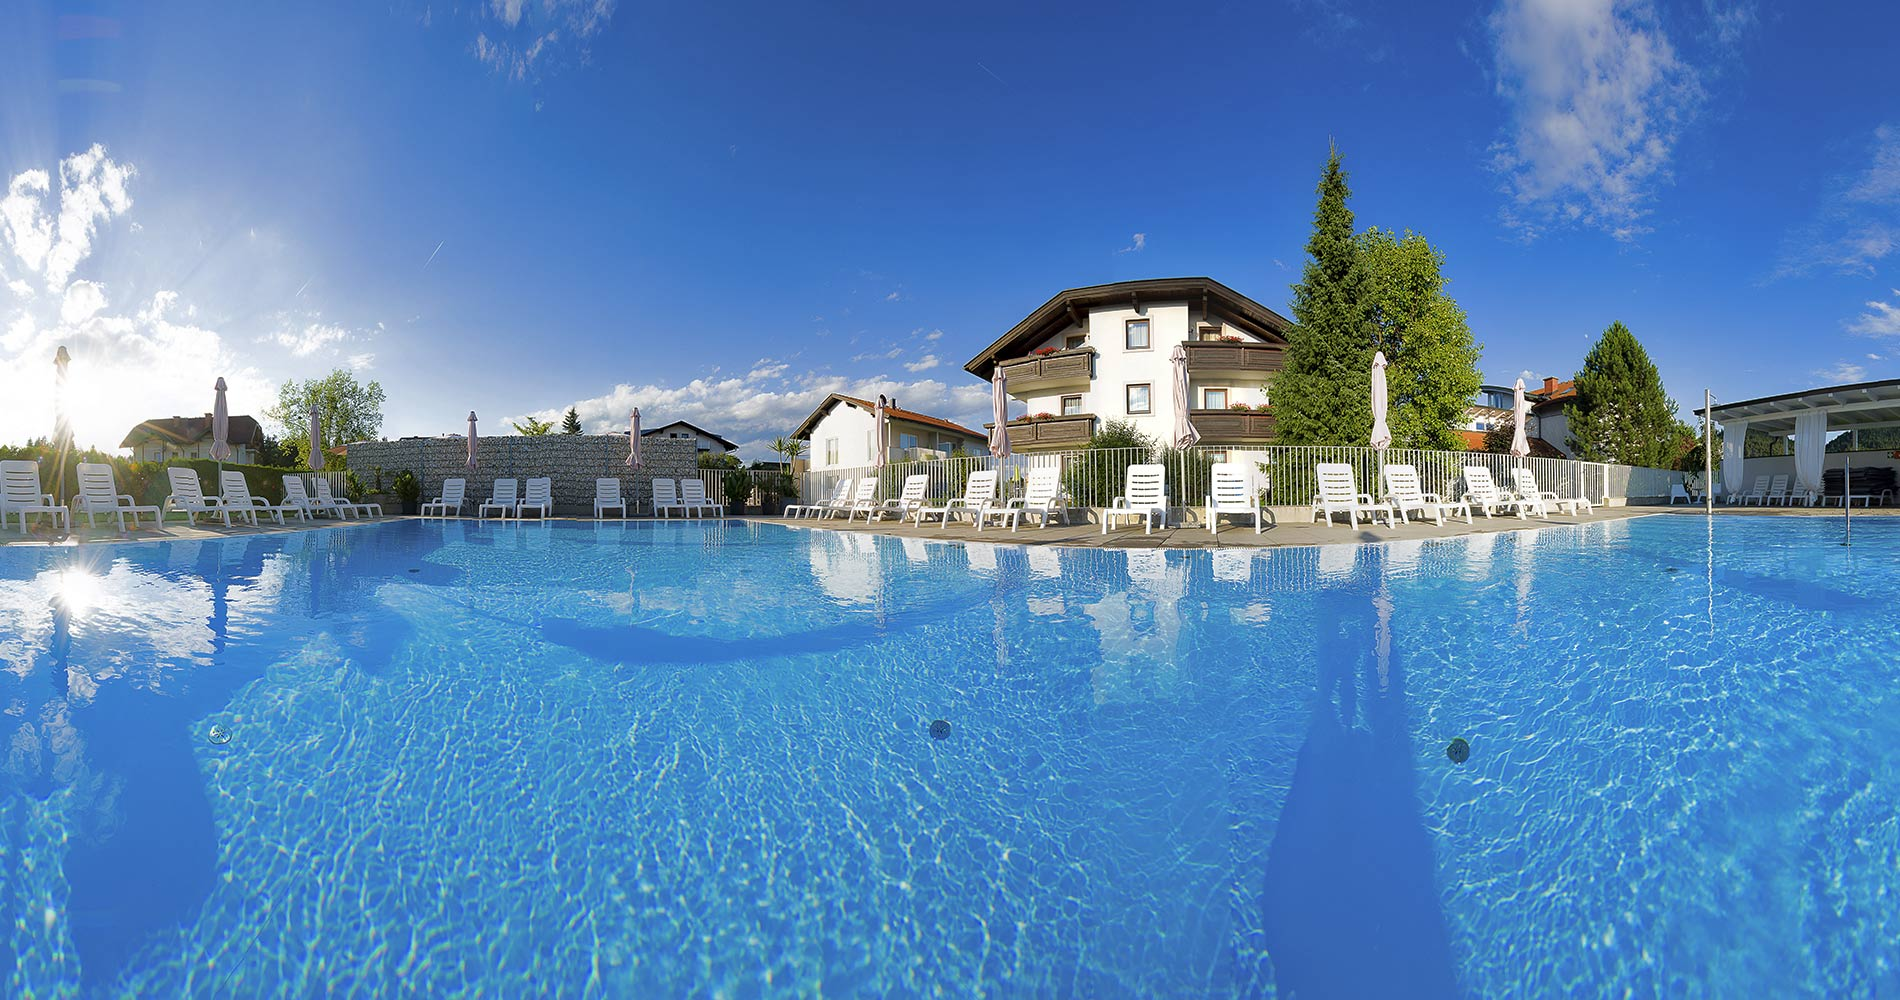 Ferienwohnung Mit Pool Kärnten Holiday Apartments At The Pool For Your Family